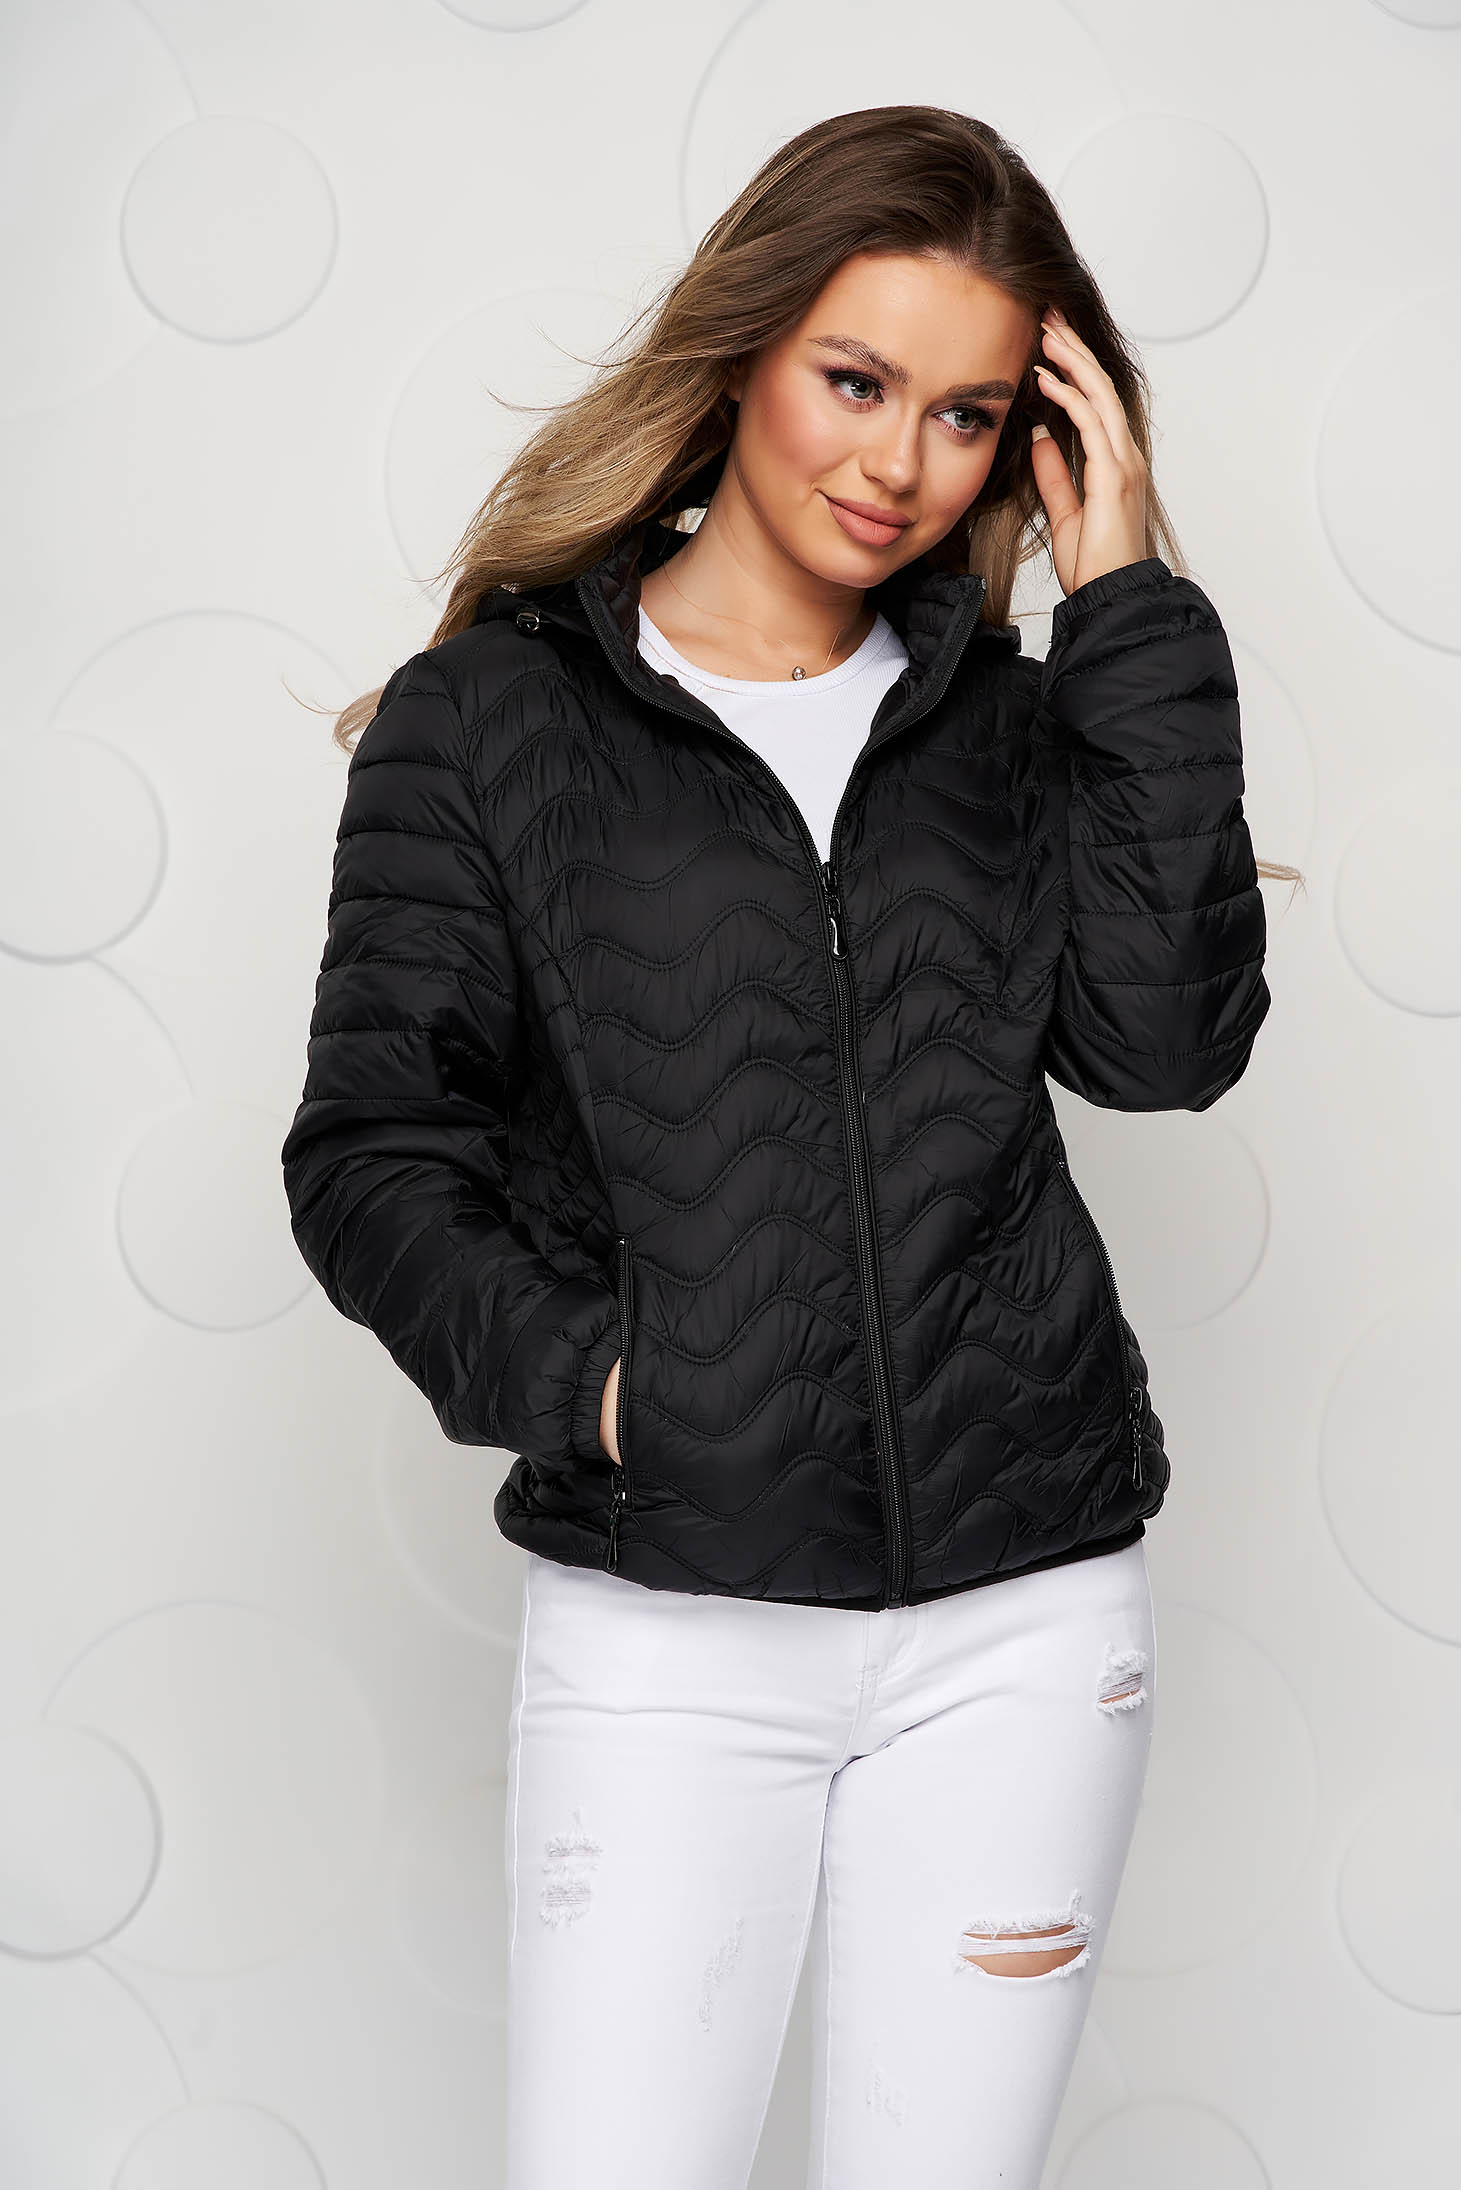 Black jacket tented from slicker sporty